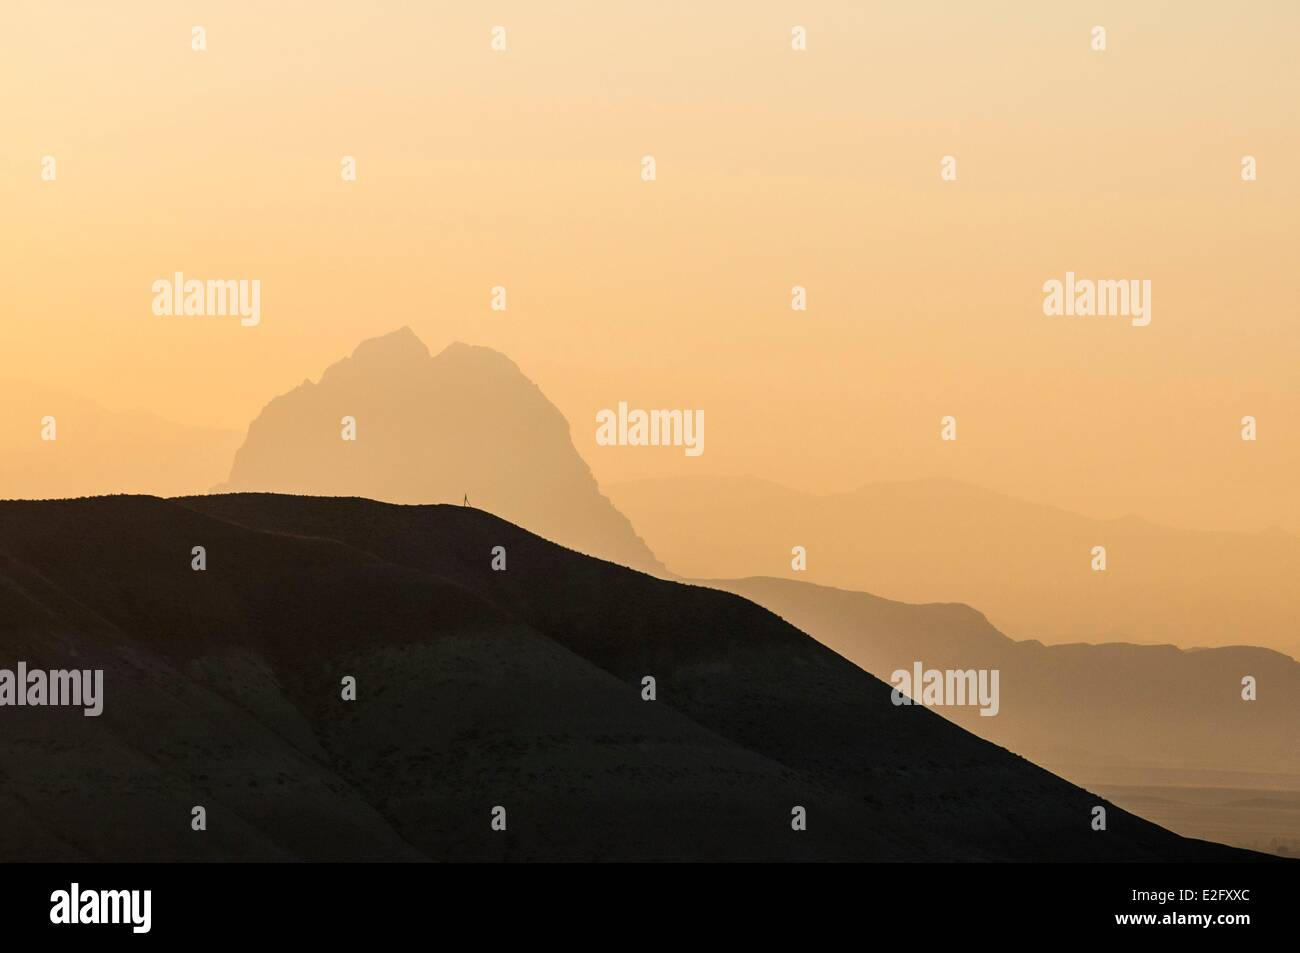 Azerbaijan Nakhchivan mythical mountain Haca Dag where the Noah's Ark run aground - Stock Image